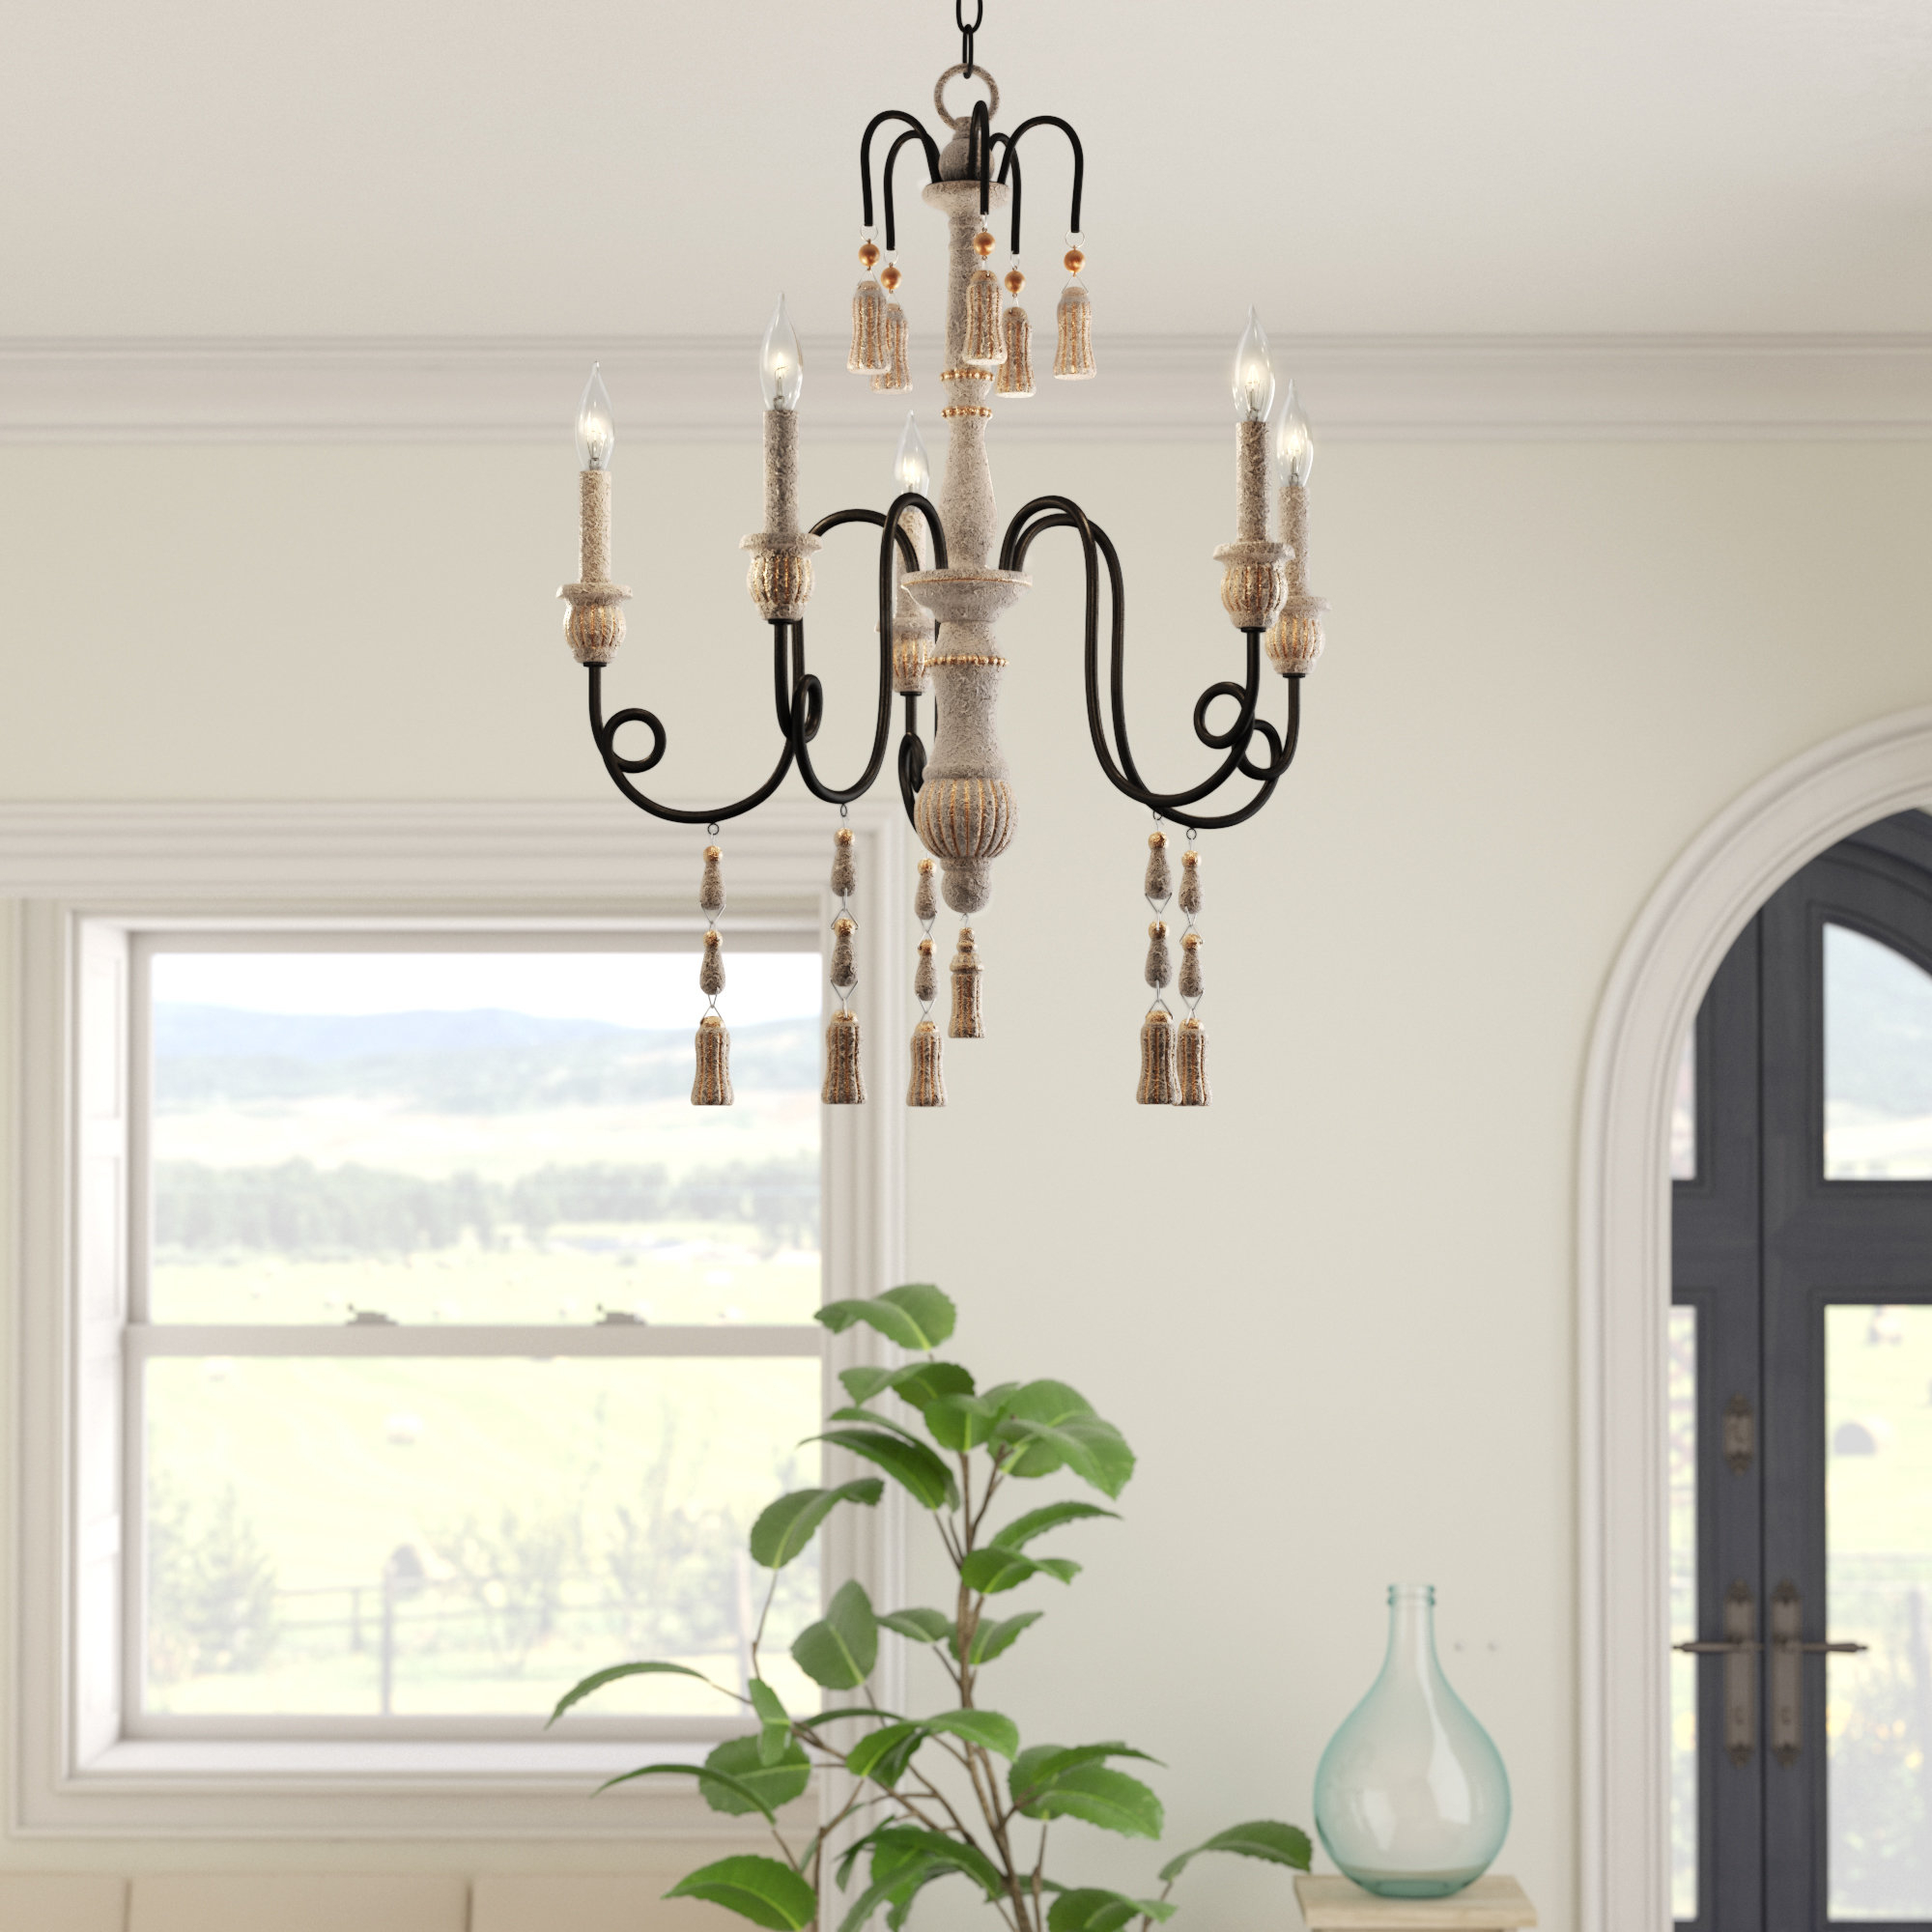 Hassan 5 Light Candle Style Chandelier Within Well Known Armande Candle Style Chandeliers (View 11 of 20)